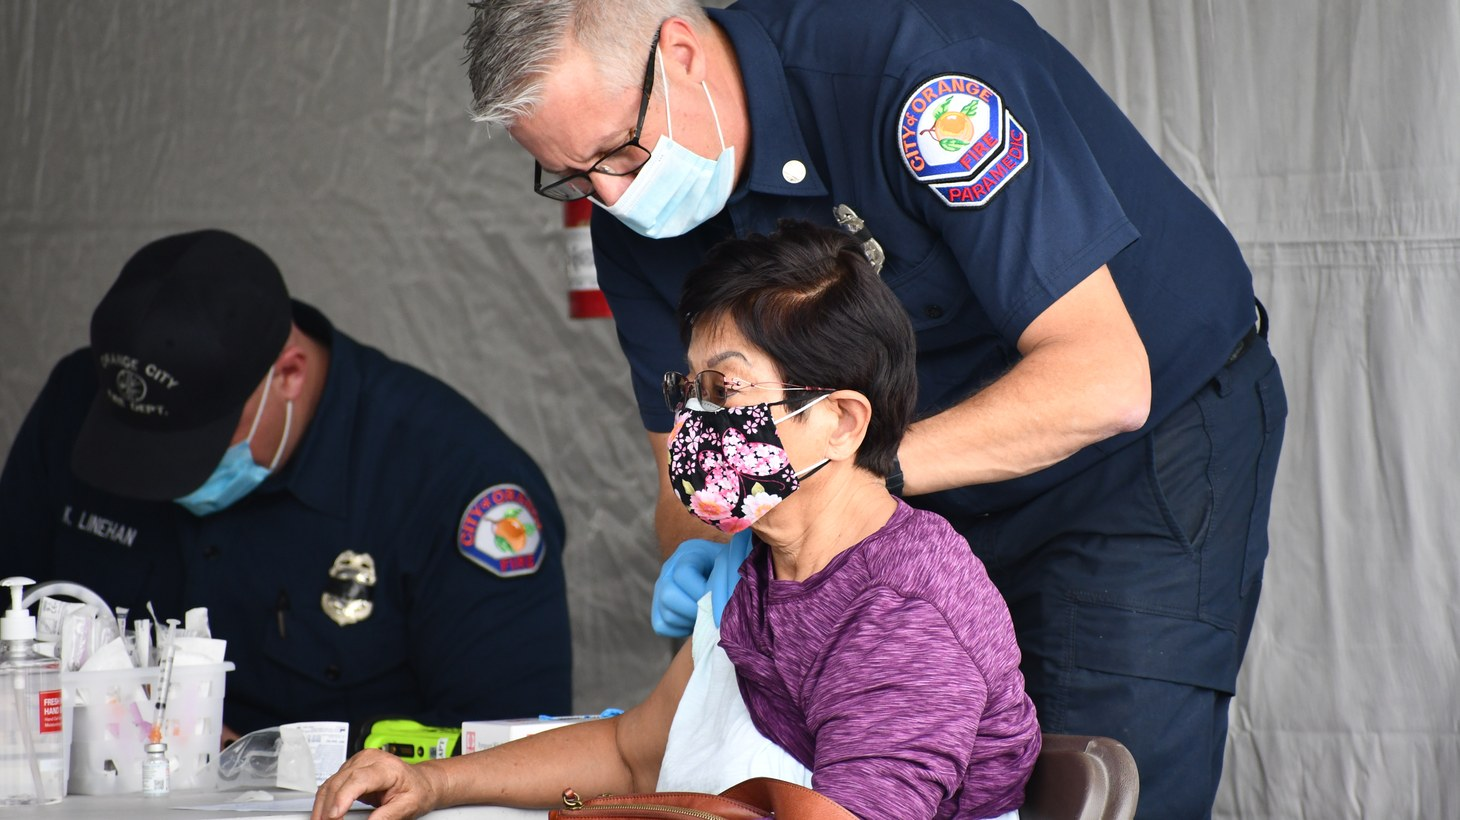 An Orange County paramedic administers the coronavirus vaccine to patients at the Disneyland Resort vaccination site, January 13, 2021.